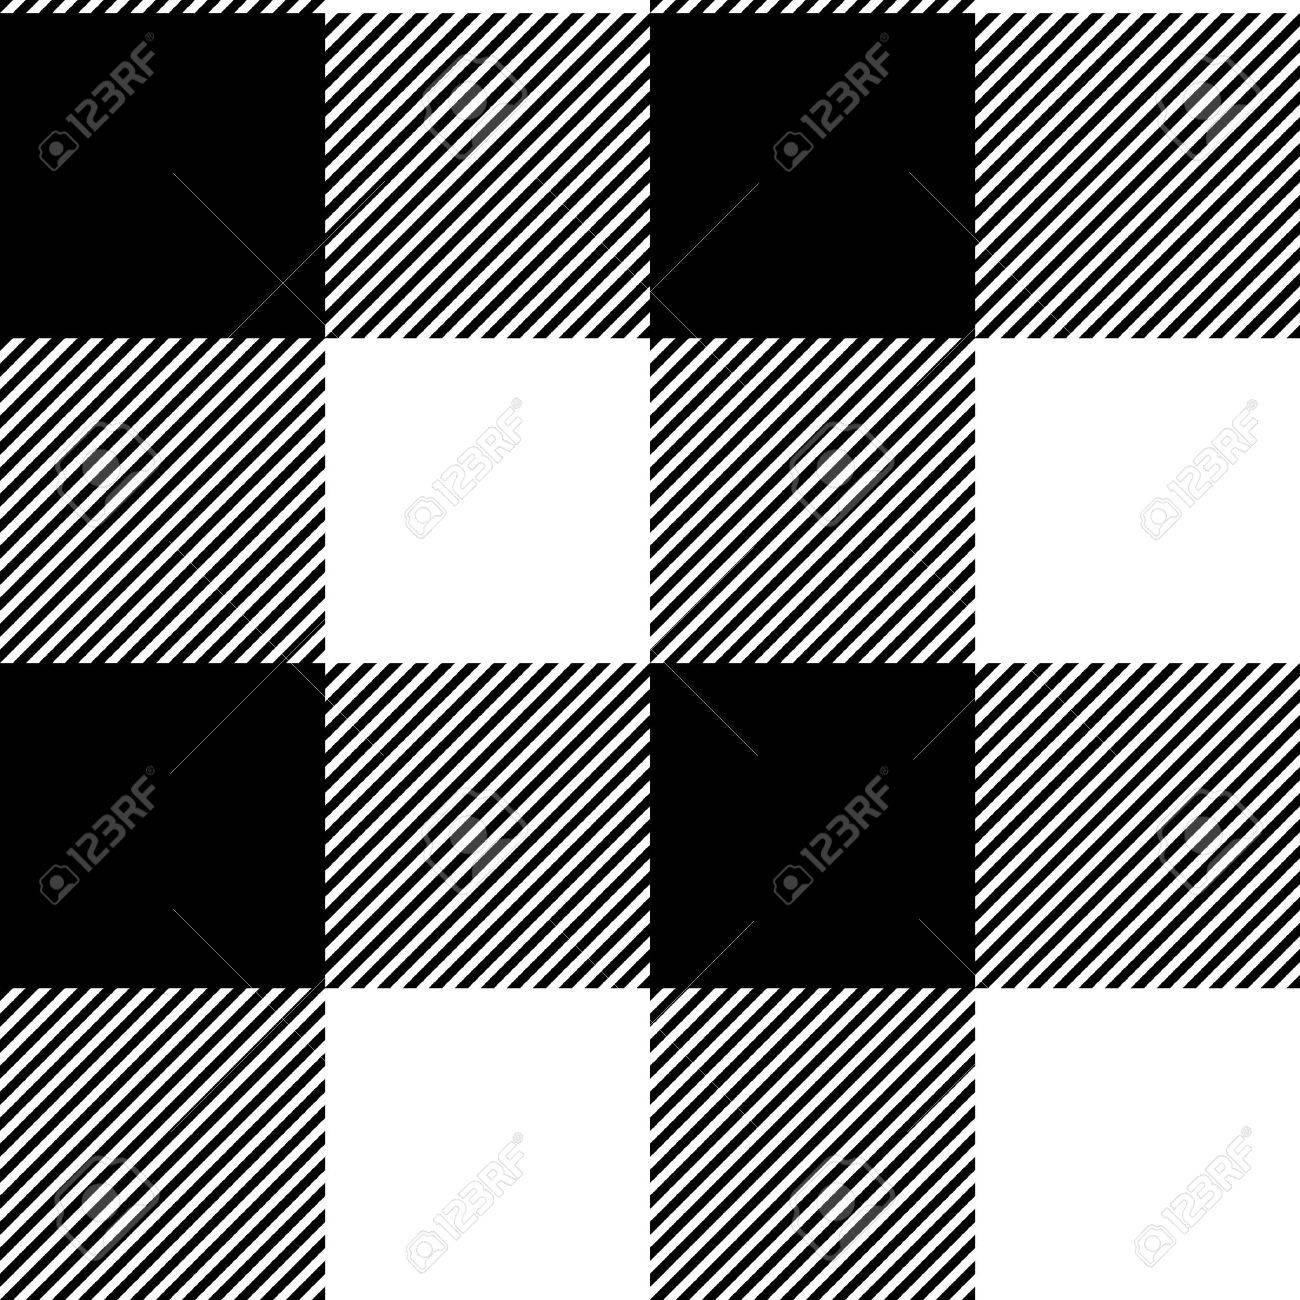 Seamless black and white checkered texture stock images image - Checkered Black And White Simple Fabric Seamless Pattern Vector Stock Vector 17983621